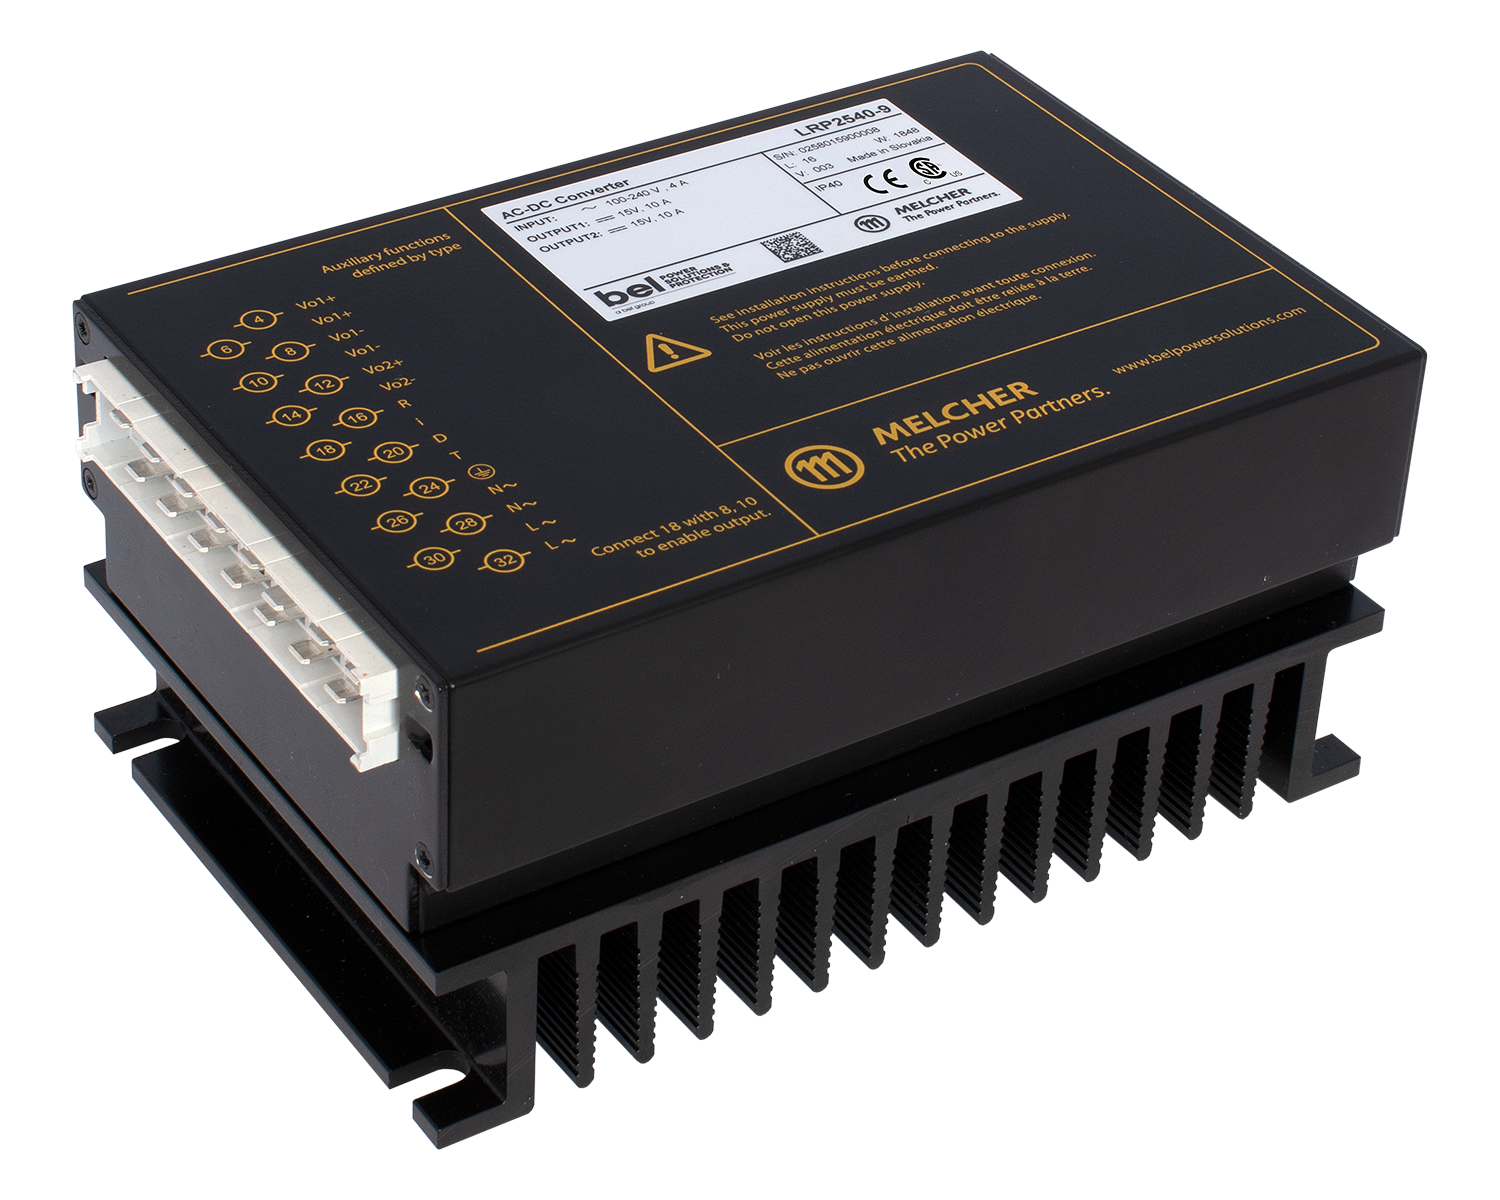 AC-DC Cassette Converters for Rugged Industrial Applications